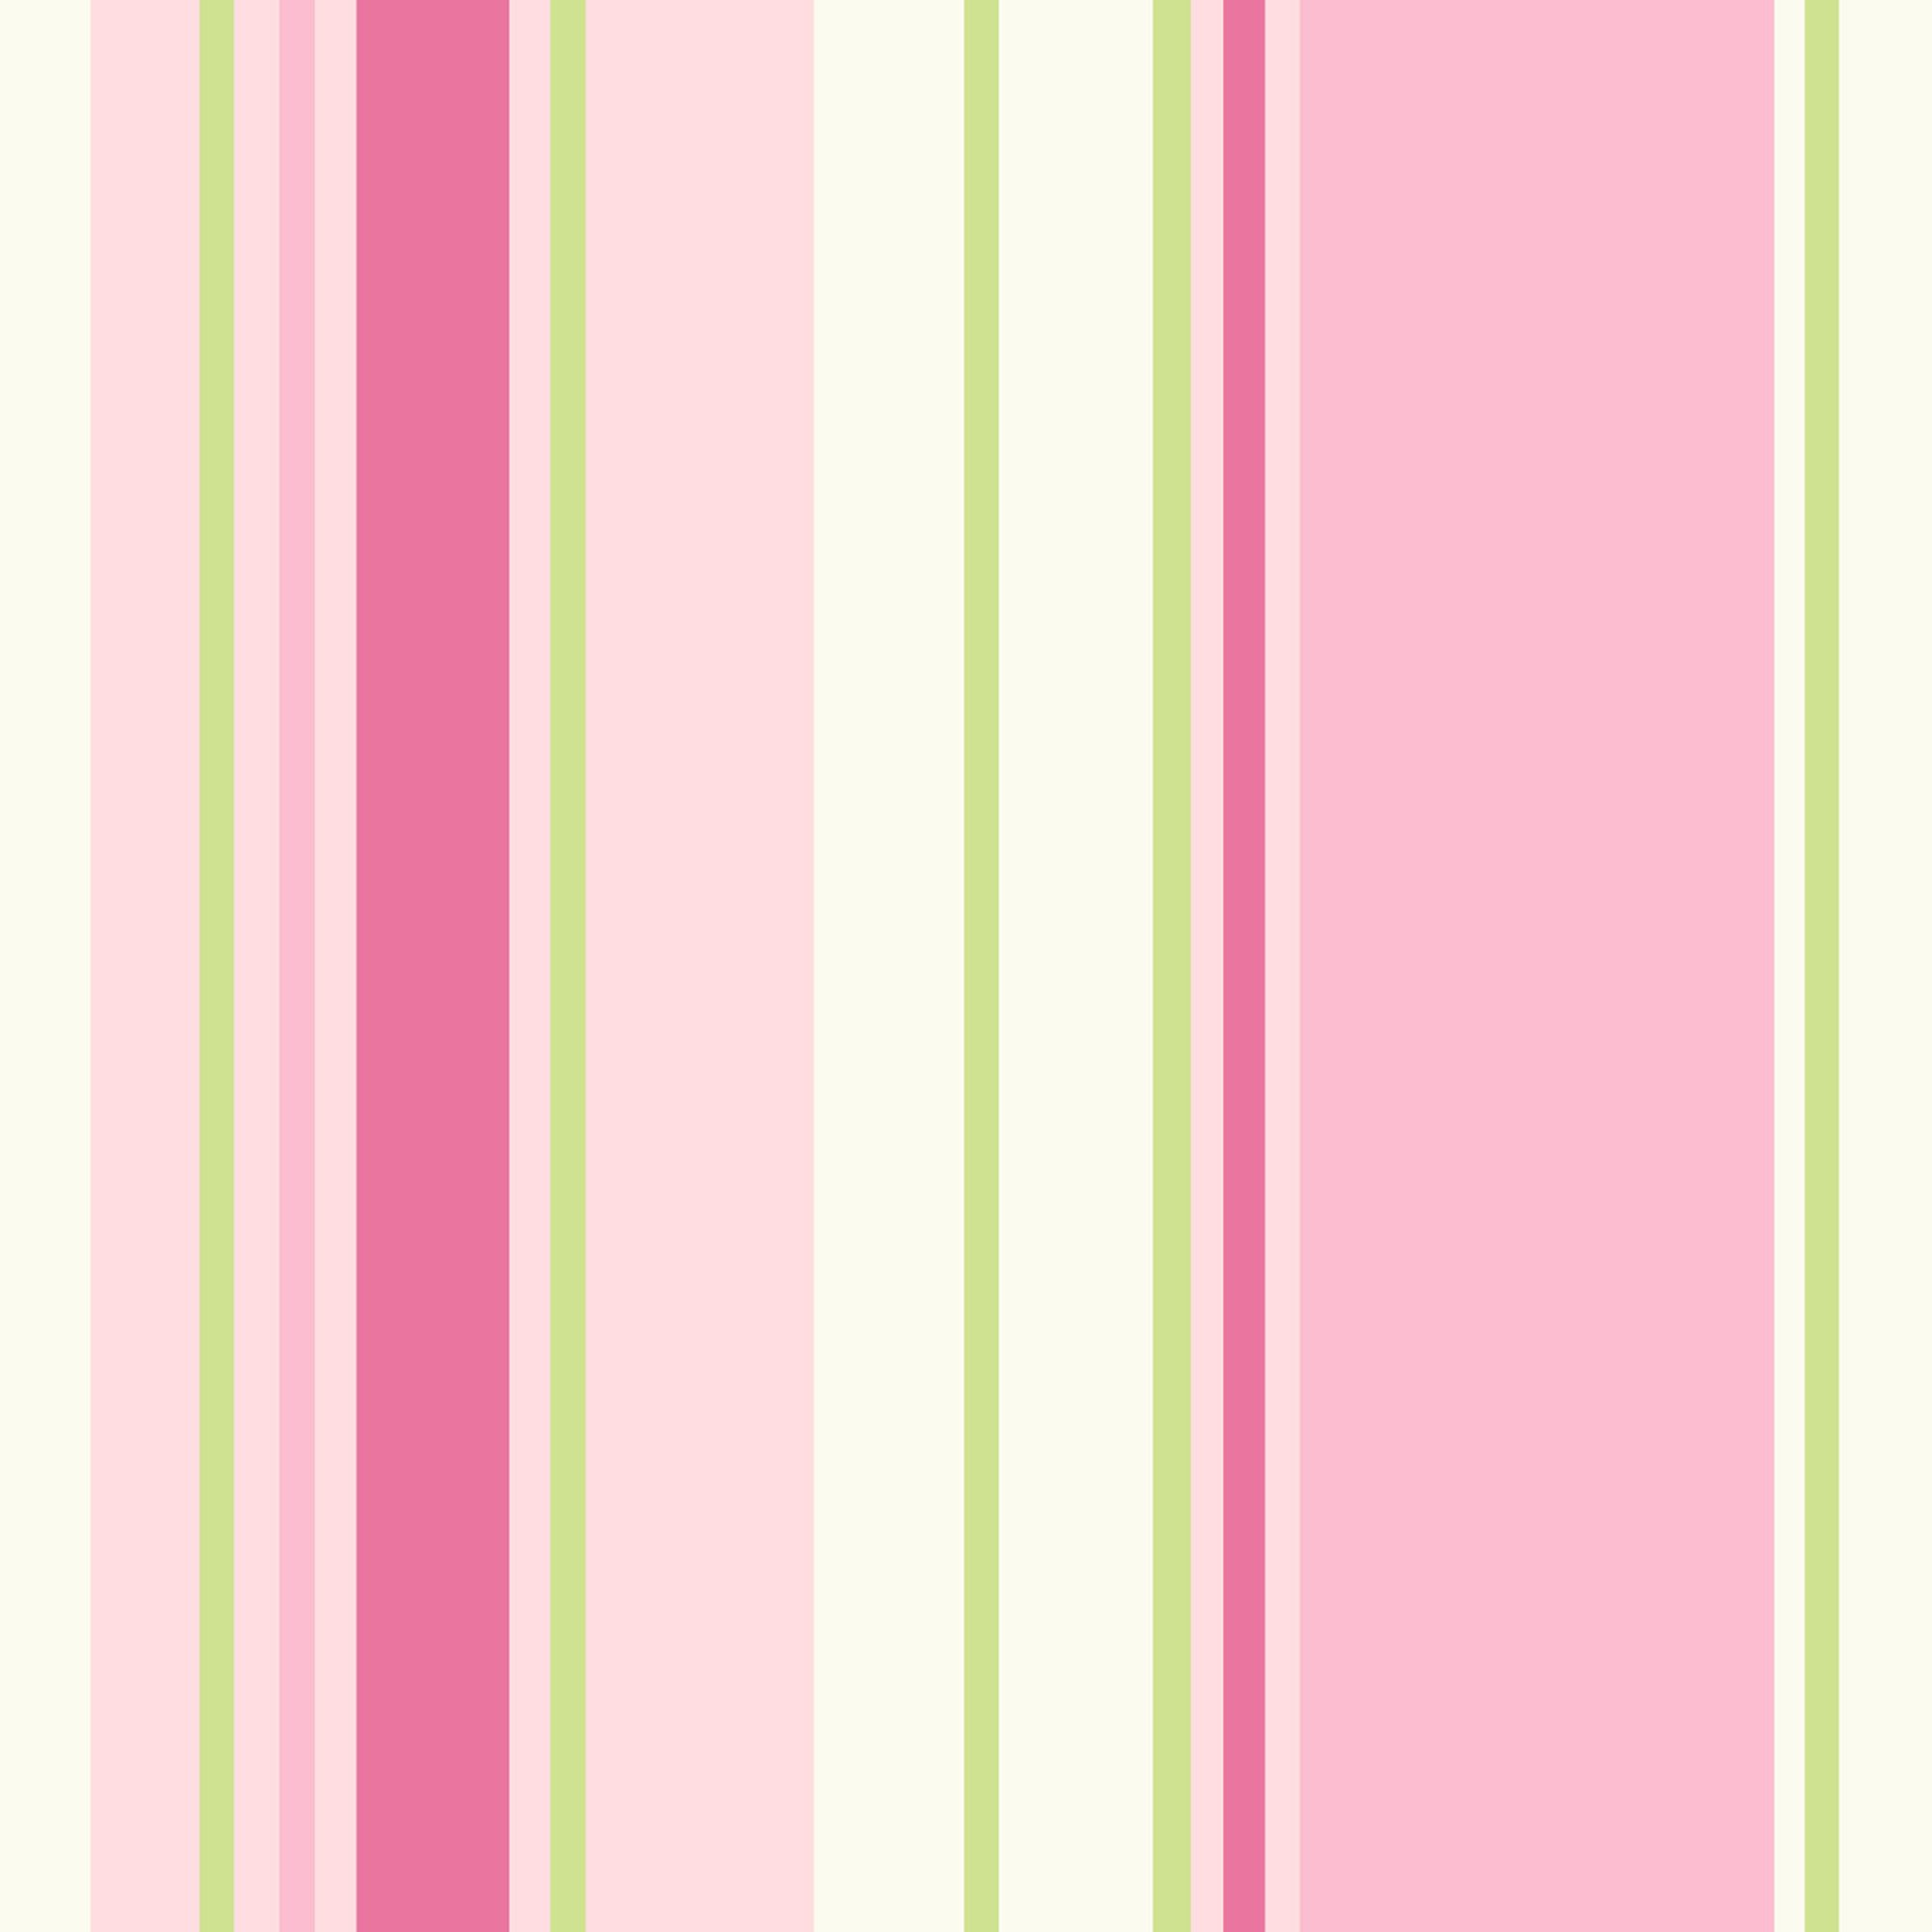 Blue Striped Wallpapers on WallpaperDog